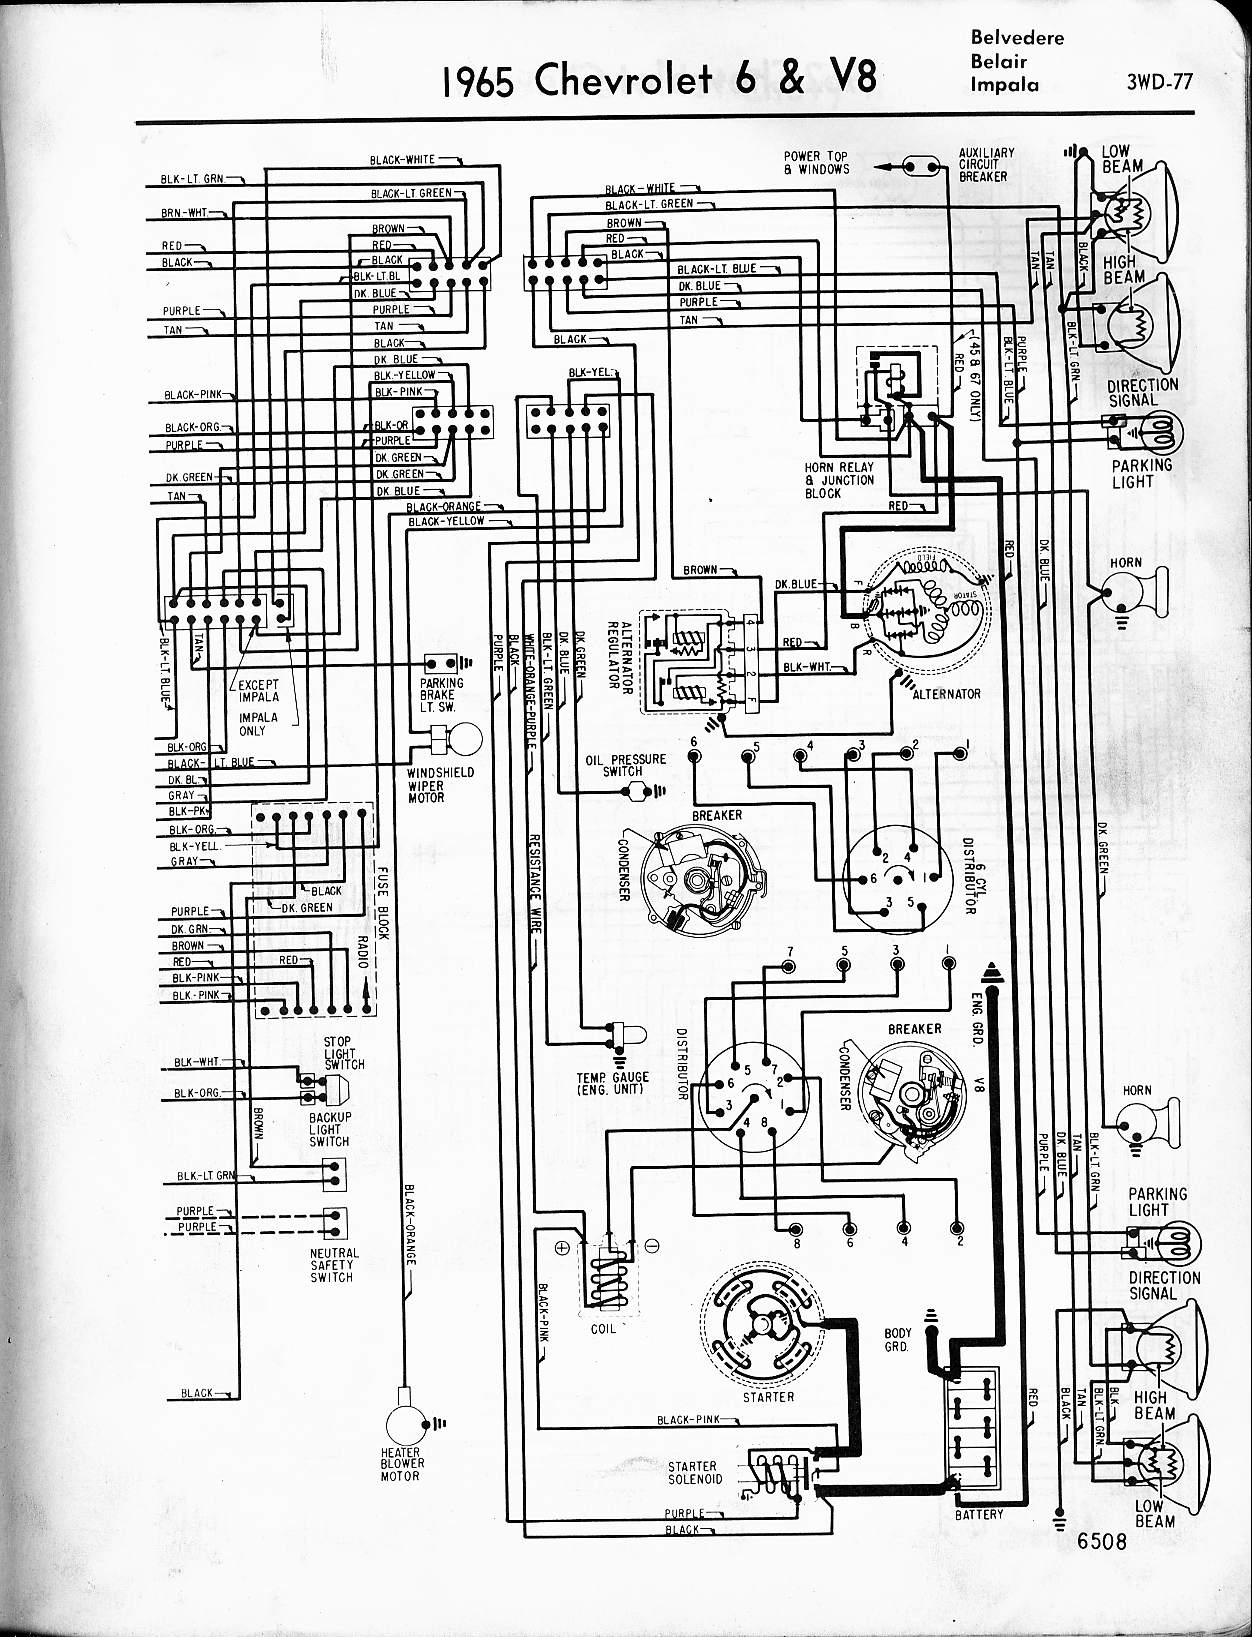 chevy diagrams rh wiring wizard com 1965 chevelle engine wiring diagram  1965 chevelle engine wiring diagram